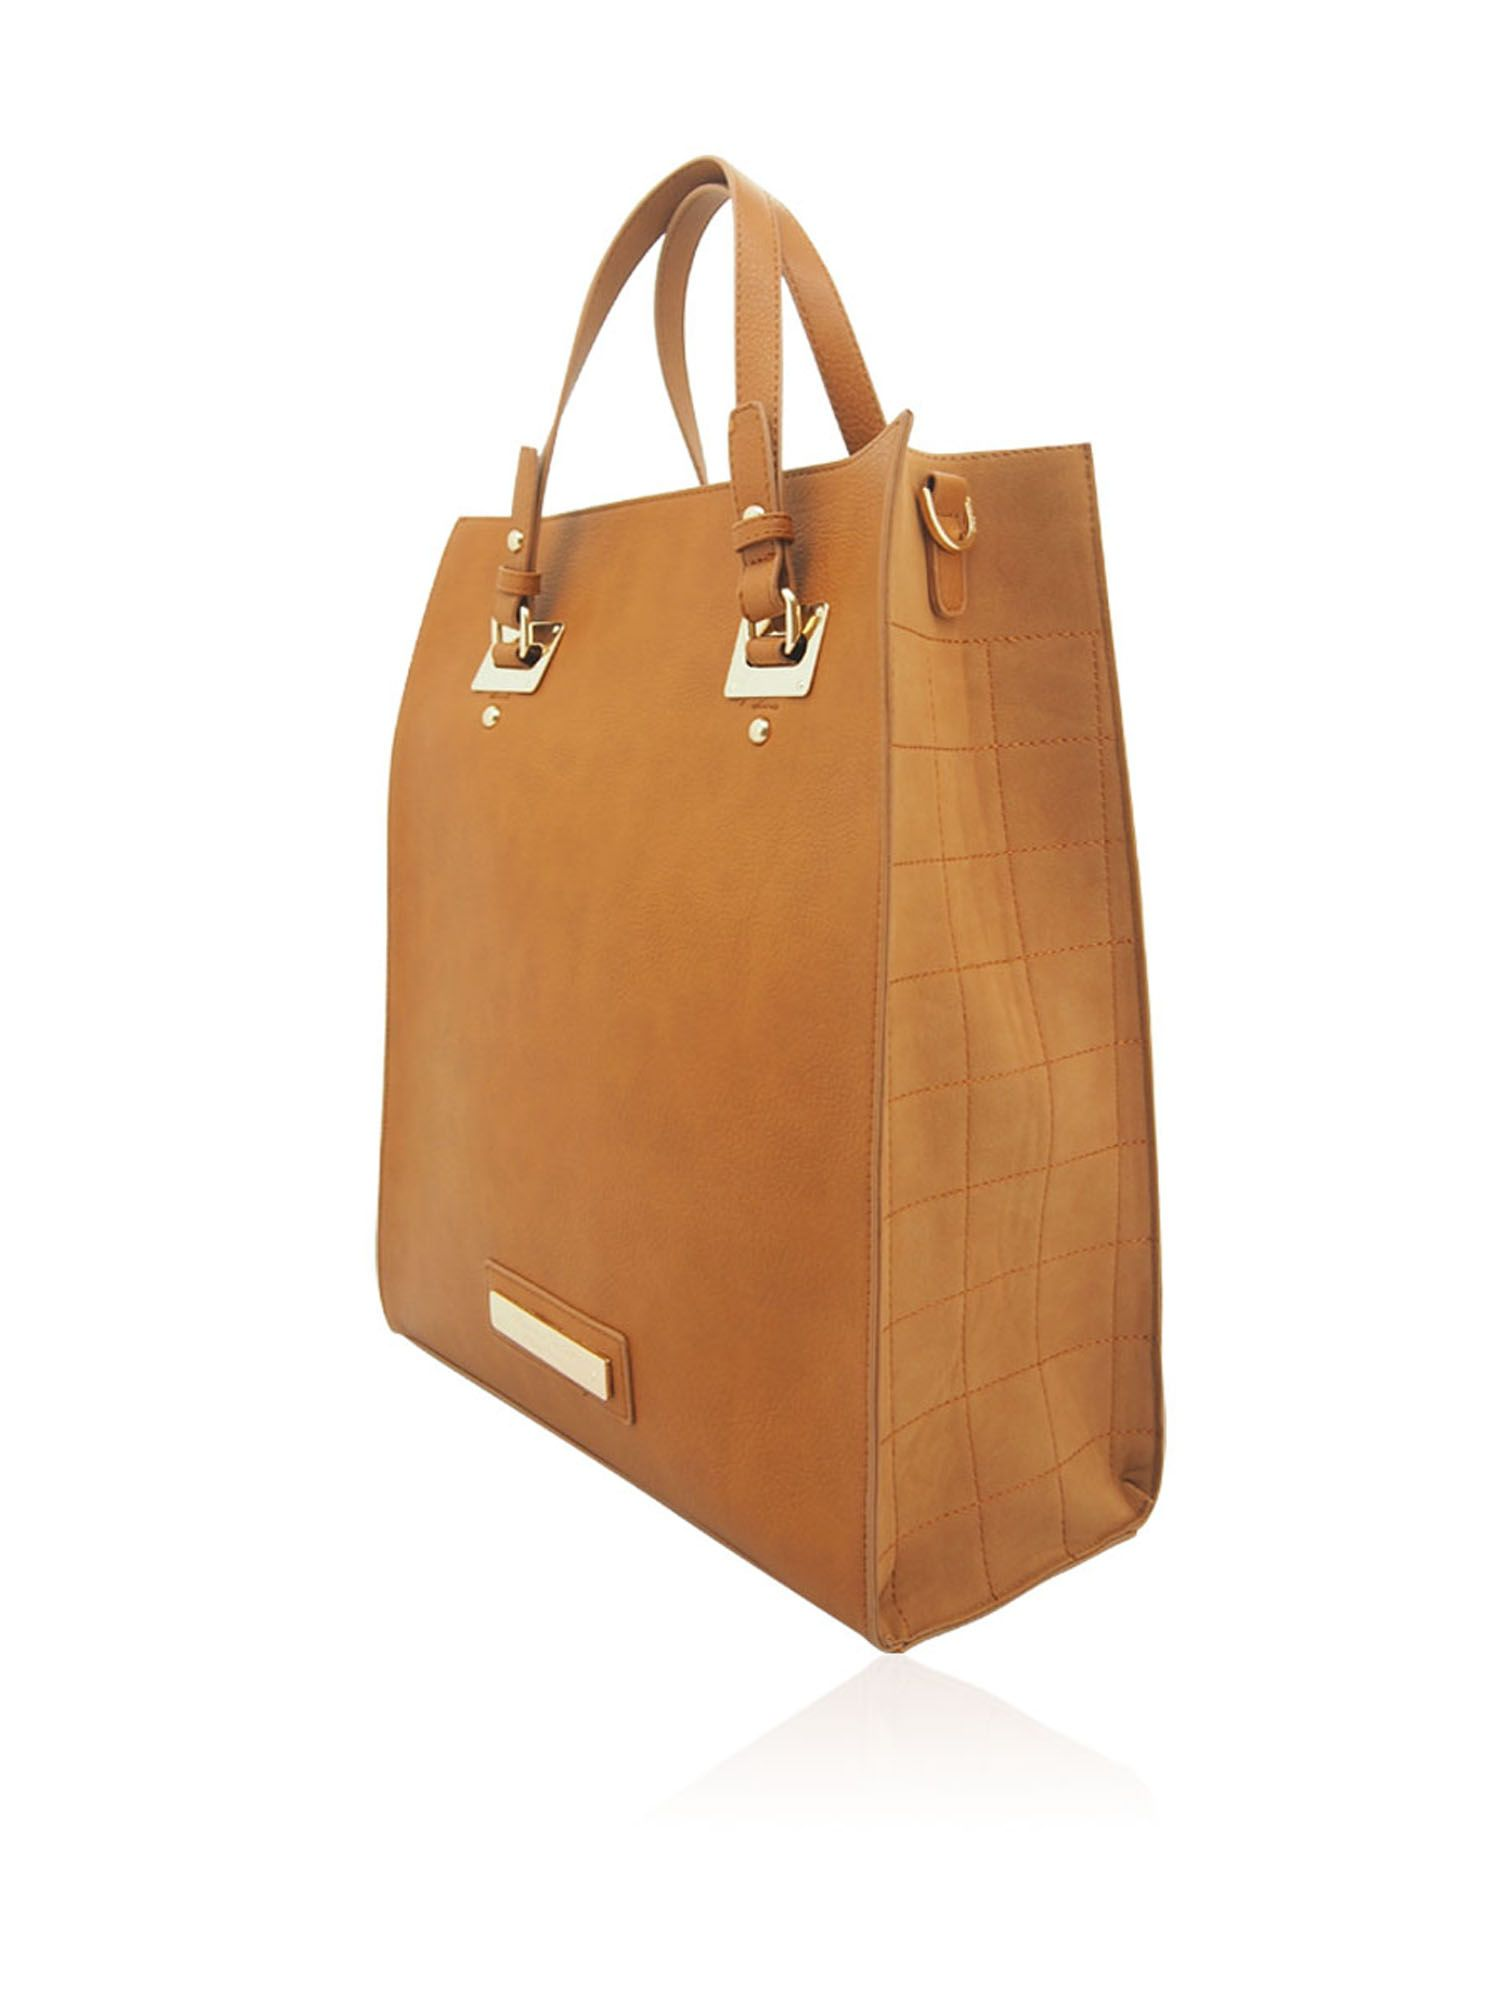 eb383057b962 This classic Anna Smith tote bag by LYDC London is a complete must-have.  Featuring two smaller straps and a longer strap for extra comfort, ...